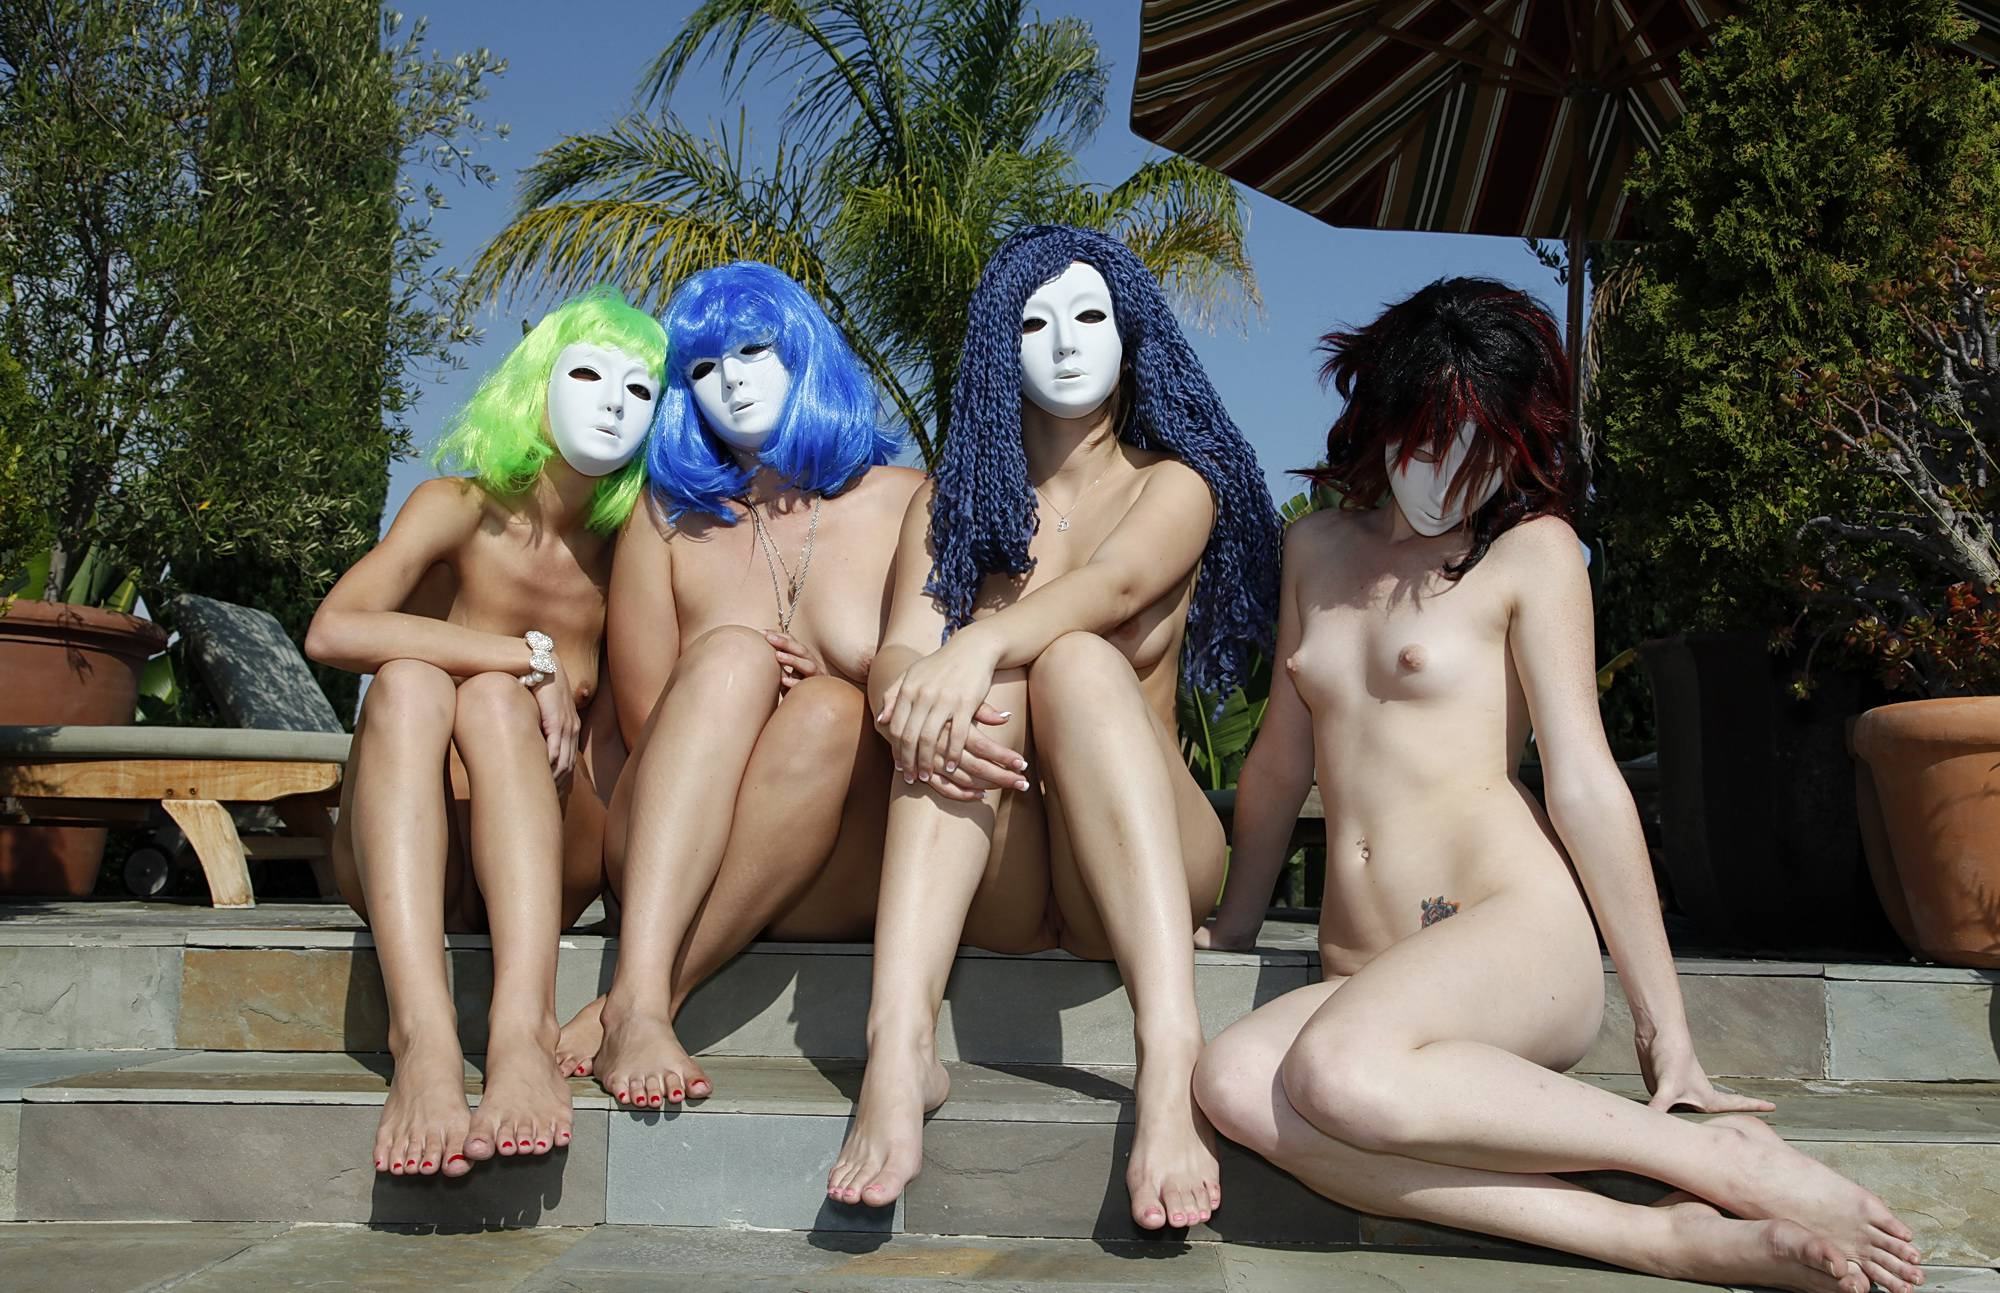 Nudist Photos Such Colorful Hair Styles - 2